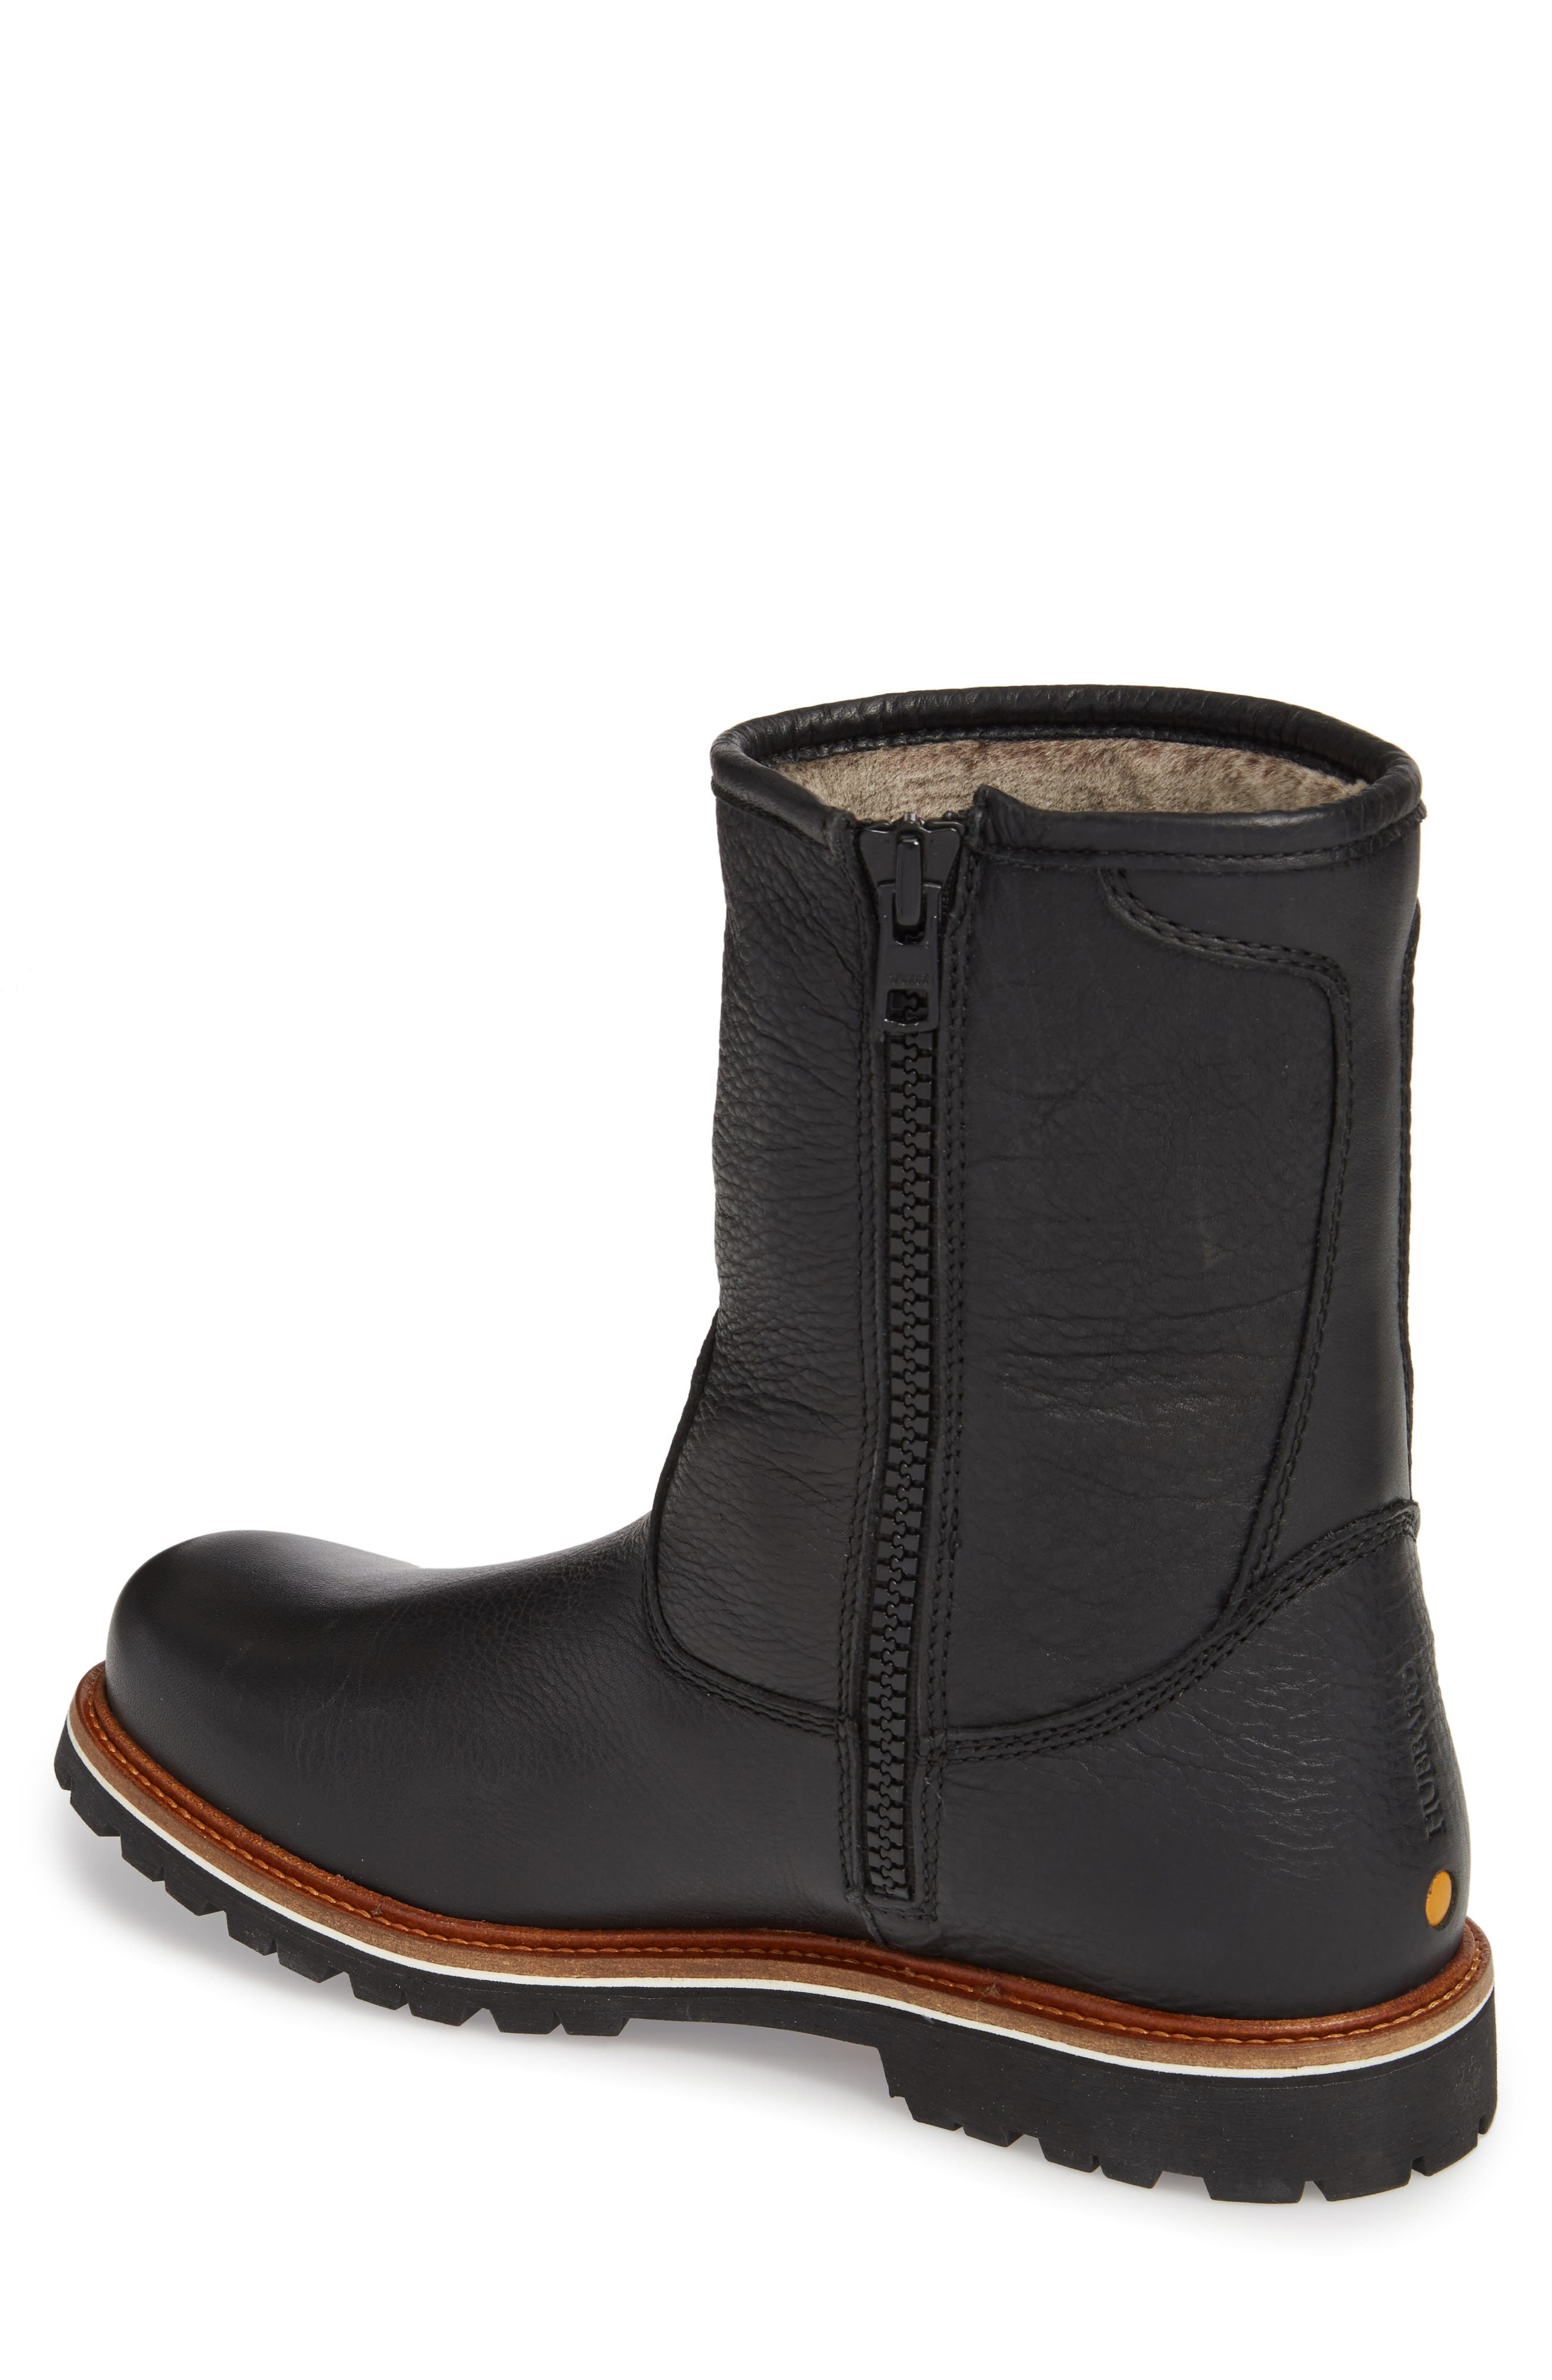 Snow Lodge Waterproof Gore-Tex<sup>®</sup> Genuine Shearling Lined Boot,                             Alternate thumbnail 2, color,                             Black Leather